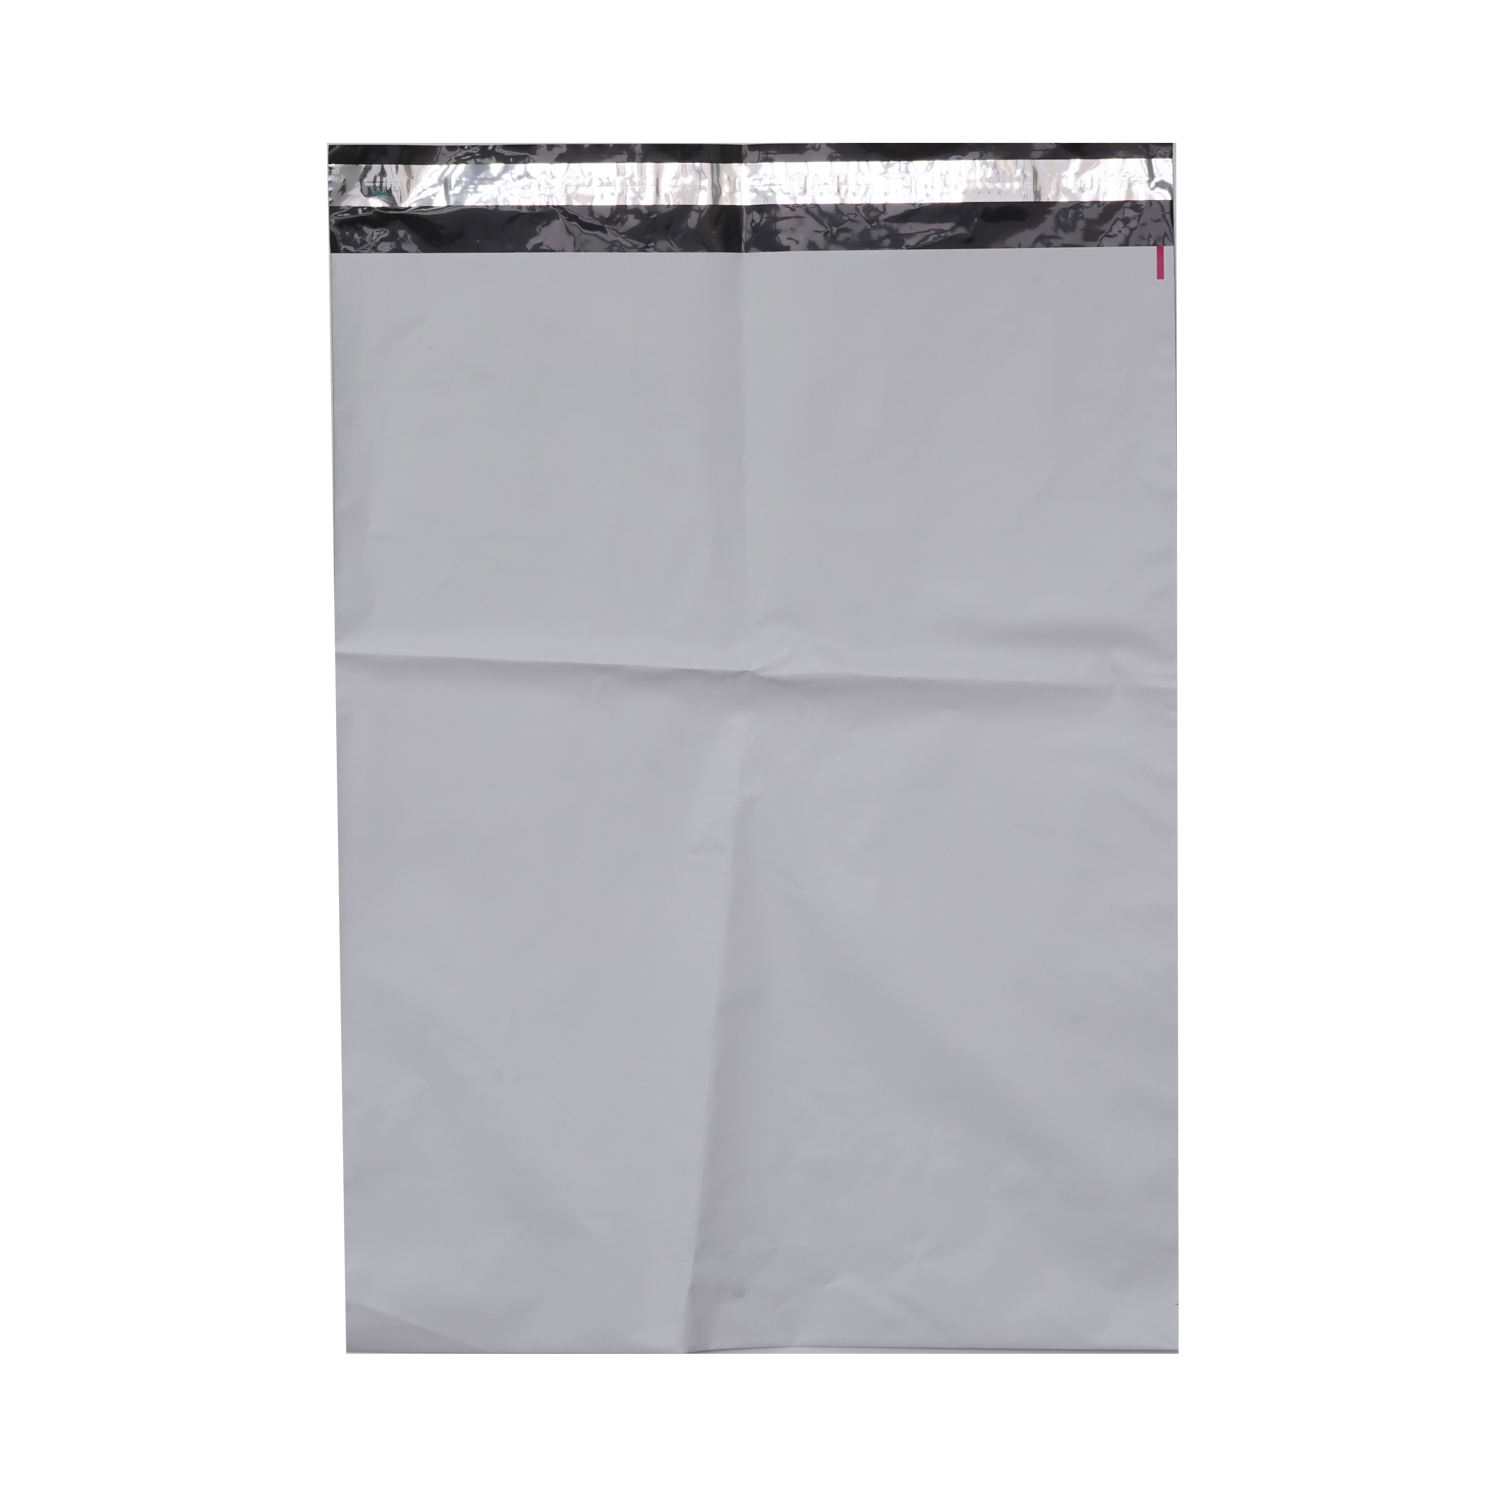 Self Adhesive Seal poly mailer